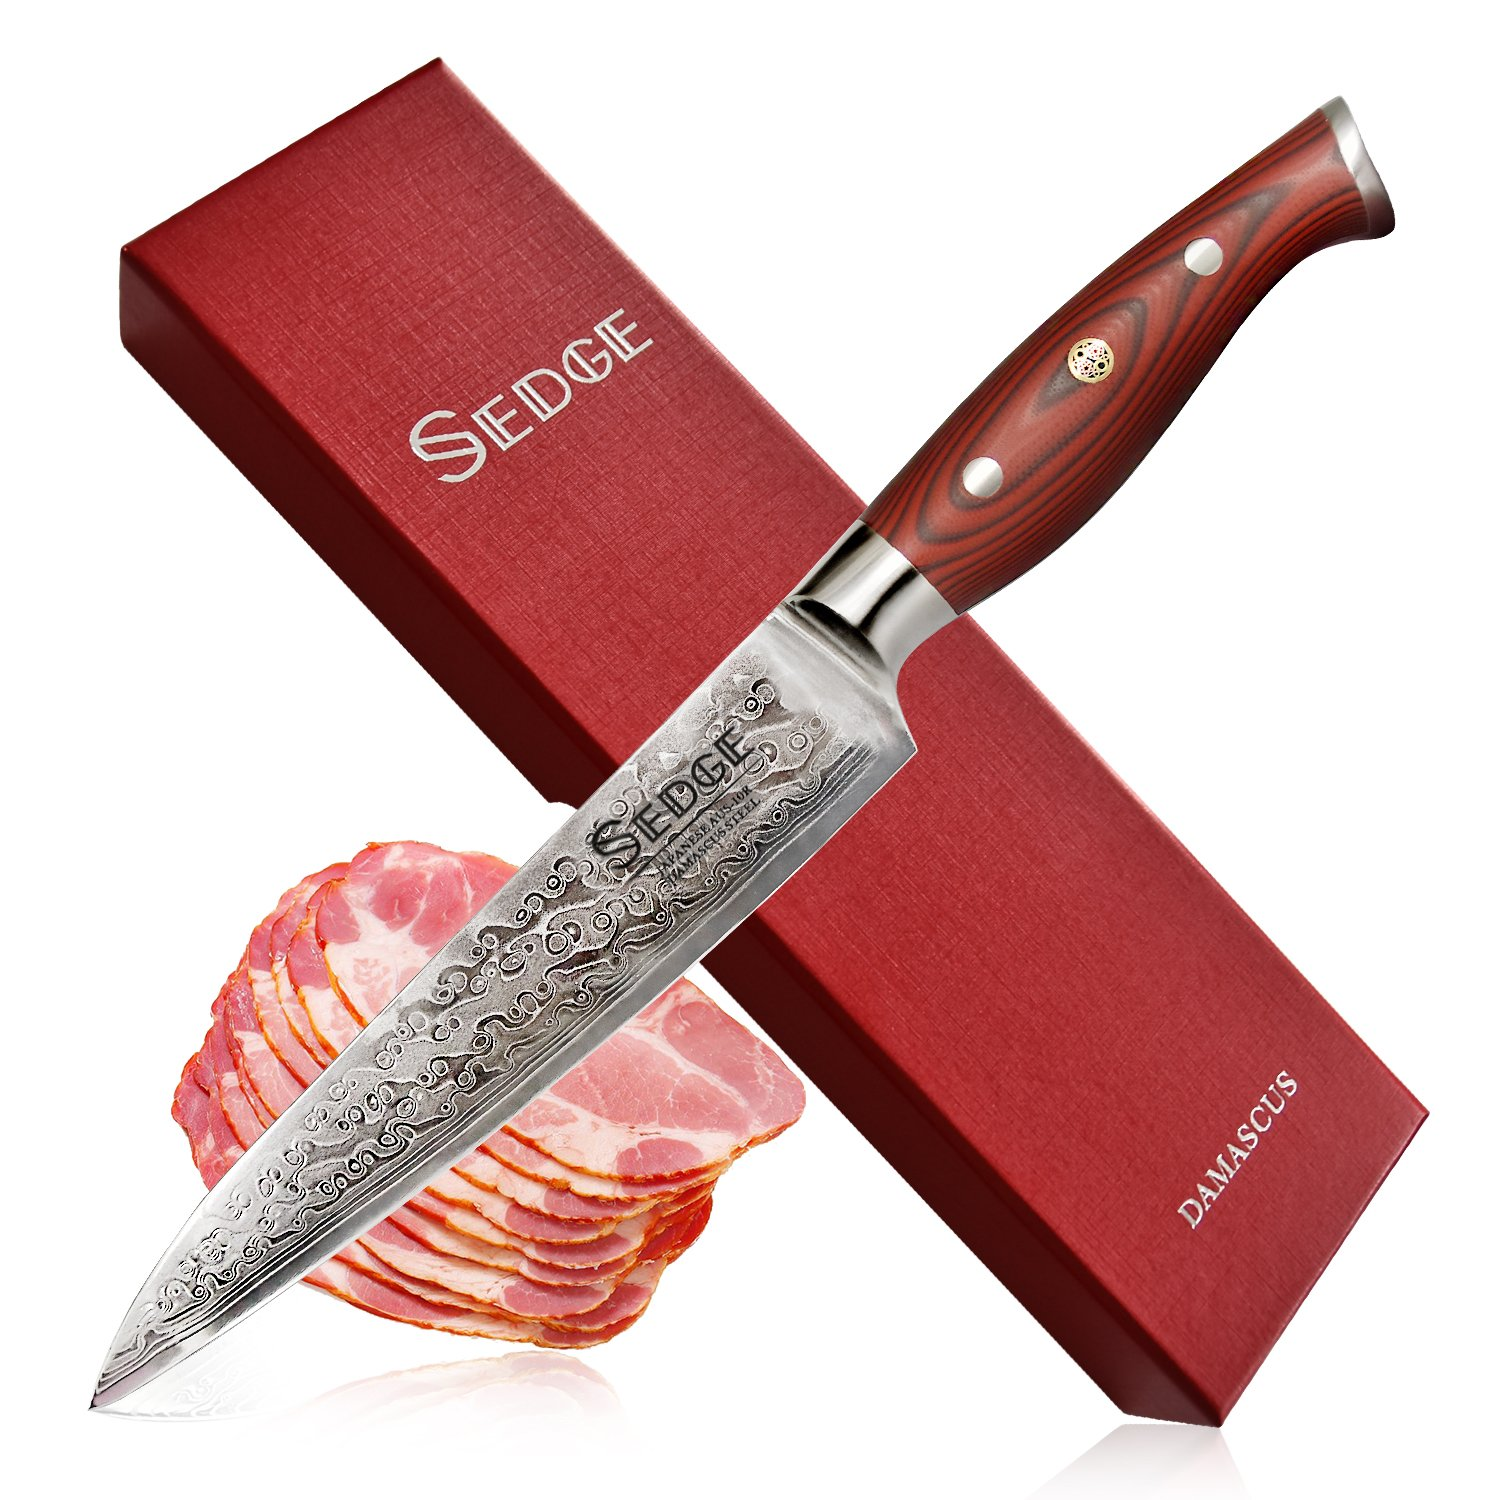 Sedge Slicing Knife - Japanese Damascus AUS-10V High Carbon Steel - Pro Brisket Meat Carving Knife 8 Inch - With Non-Slip Ergonomic G10 Handle With Case - SD-S Series